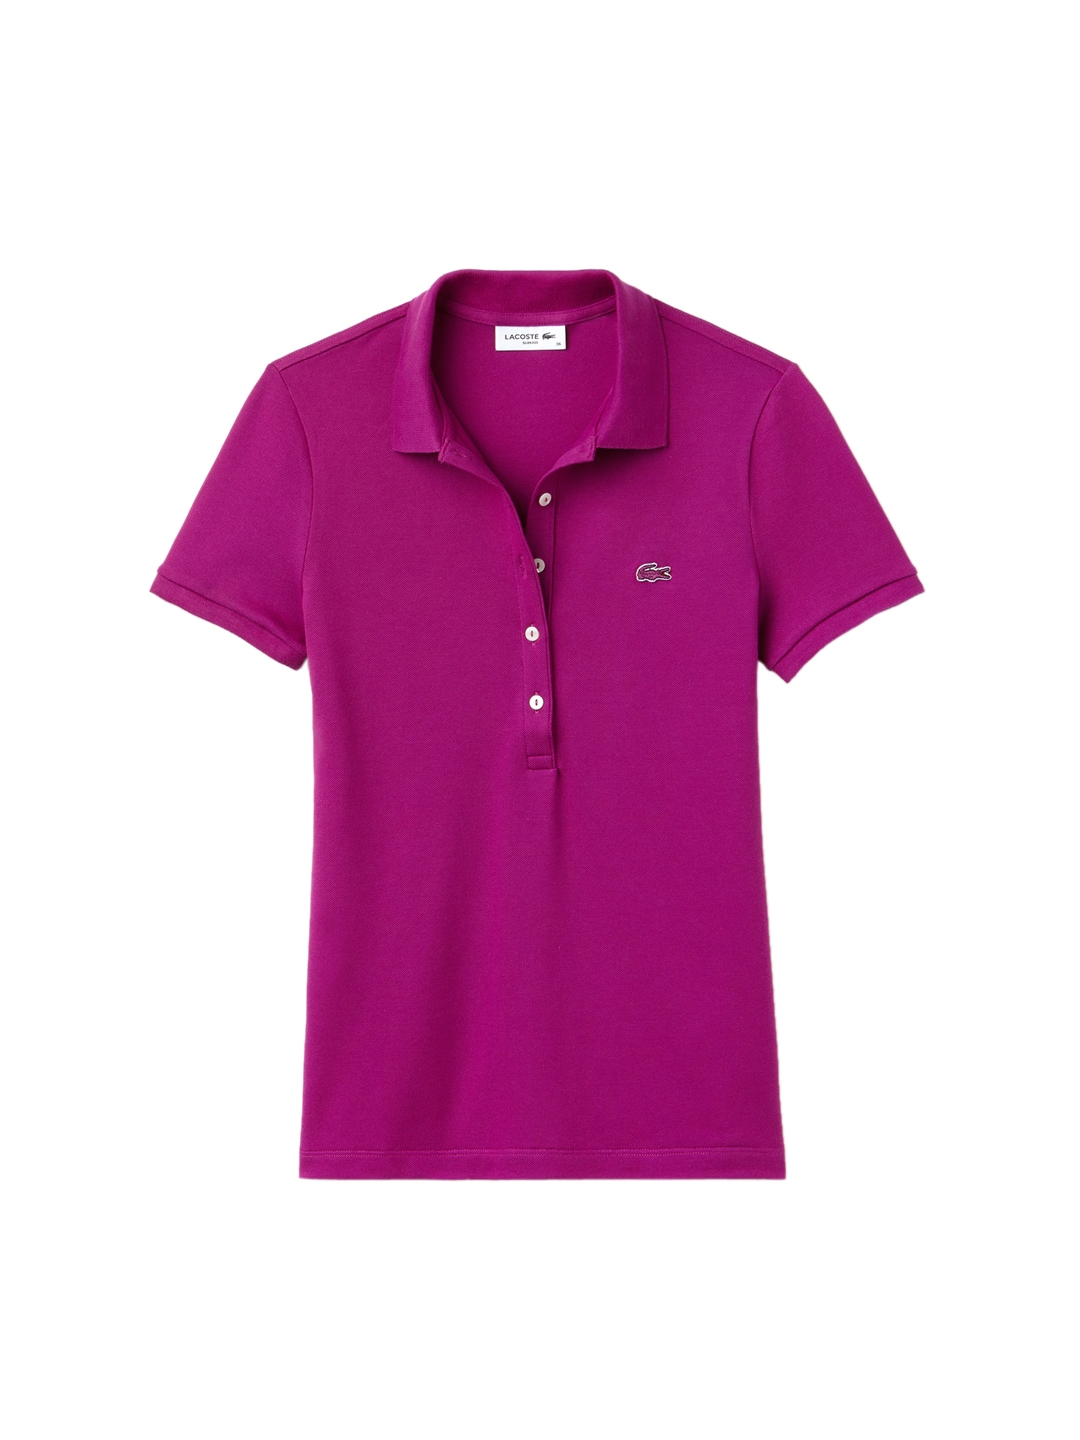 a8282e4dd13 Buy Lacoste Women Purple Solid Polo Collar T Shirt - Tshirts for ...